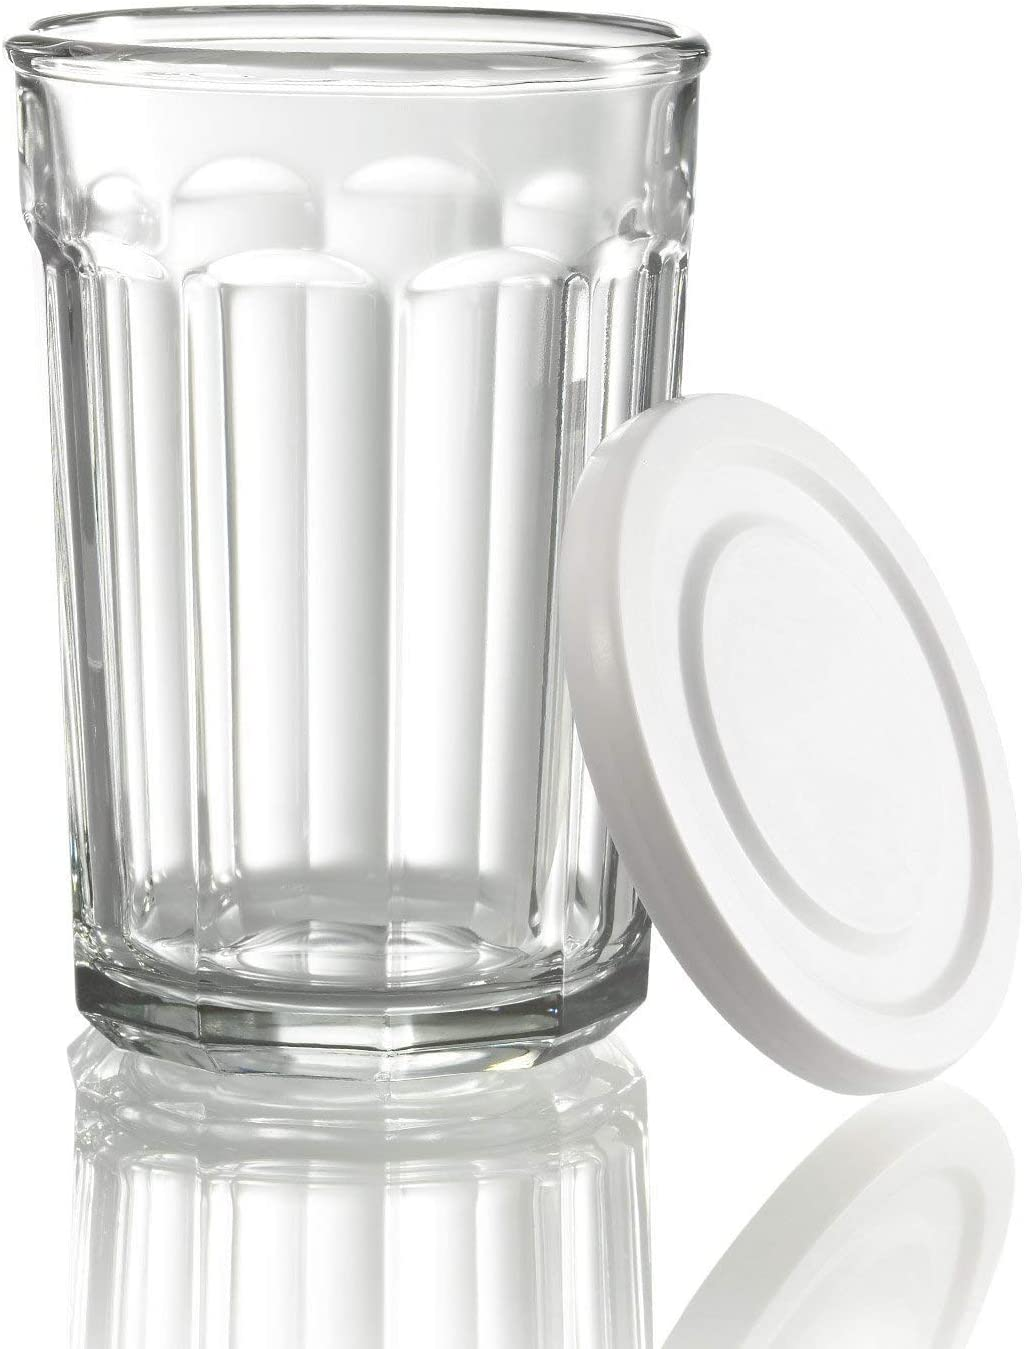 Luminarc Working Glass 21 Ounce Storage Jar//Cooler with White Lid Set of 4 Clear